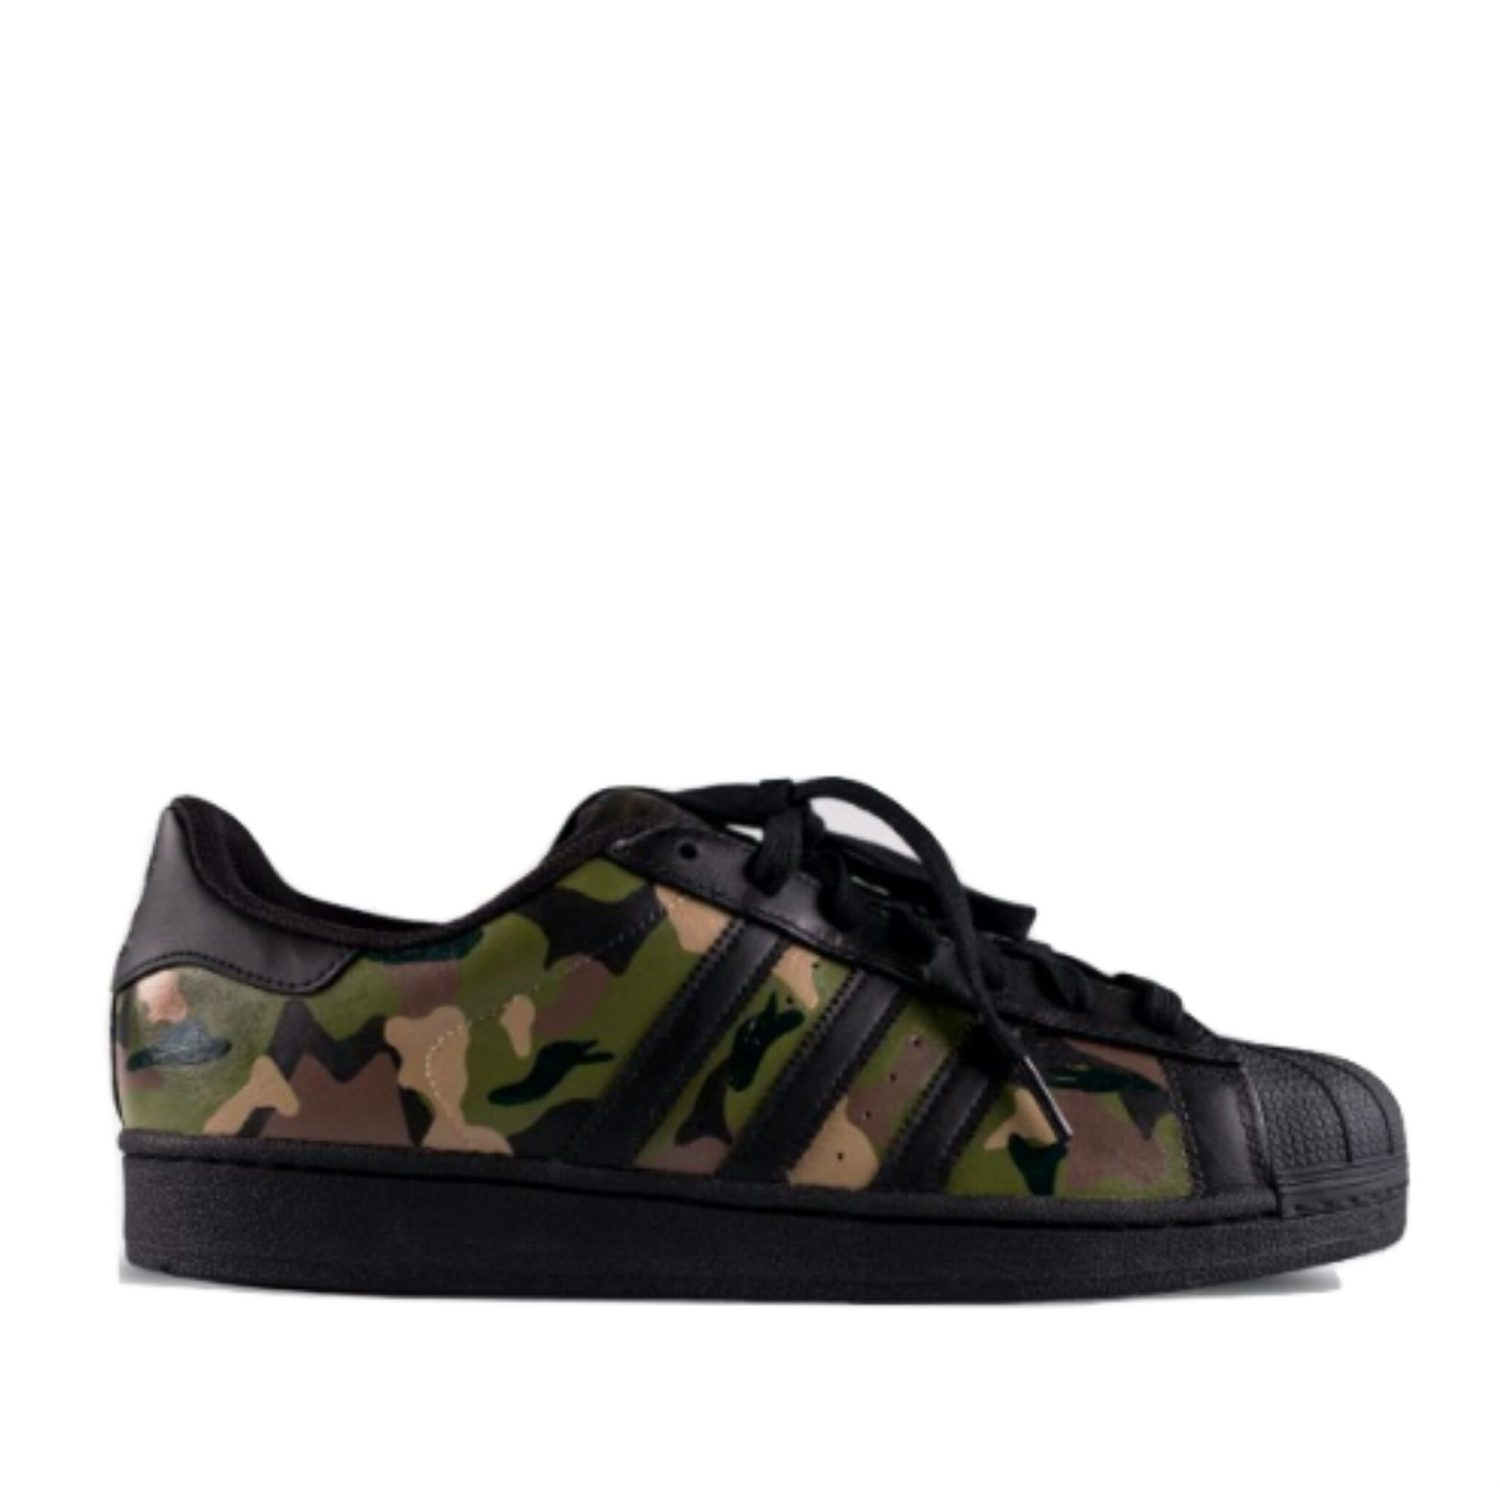 Adidas Superstar Earth Camo Shoes For Men